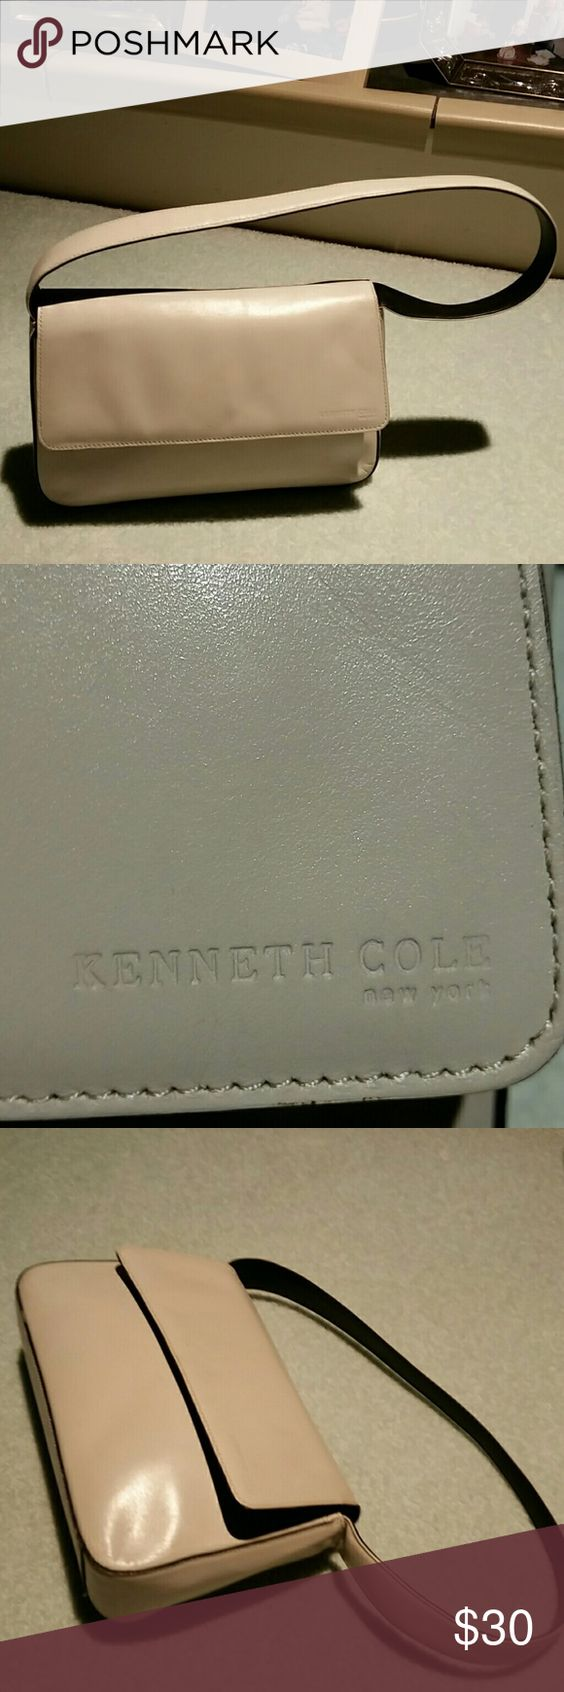 Bag Leather bag Kenneth Cole Bags Mini Bags